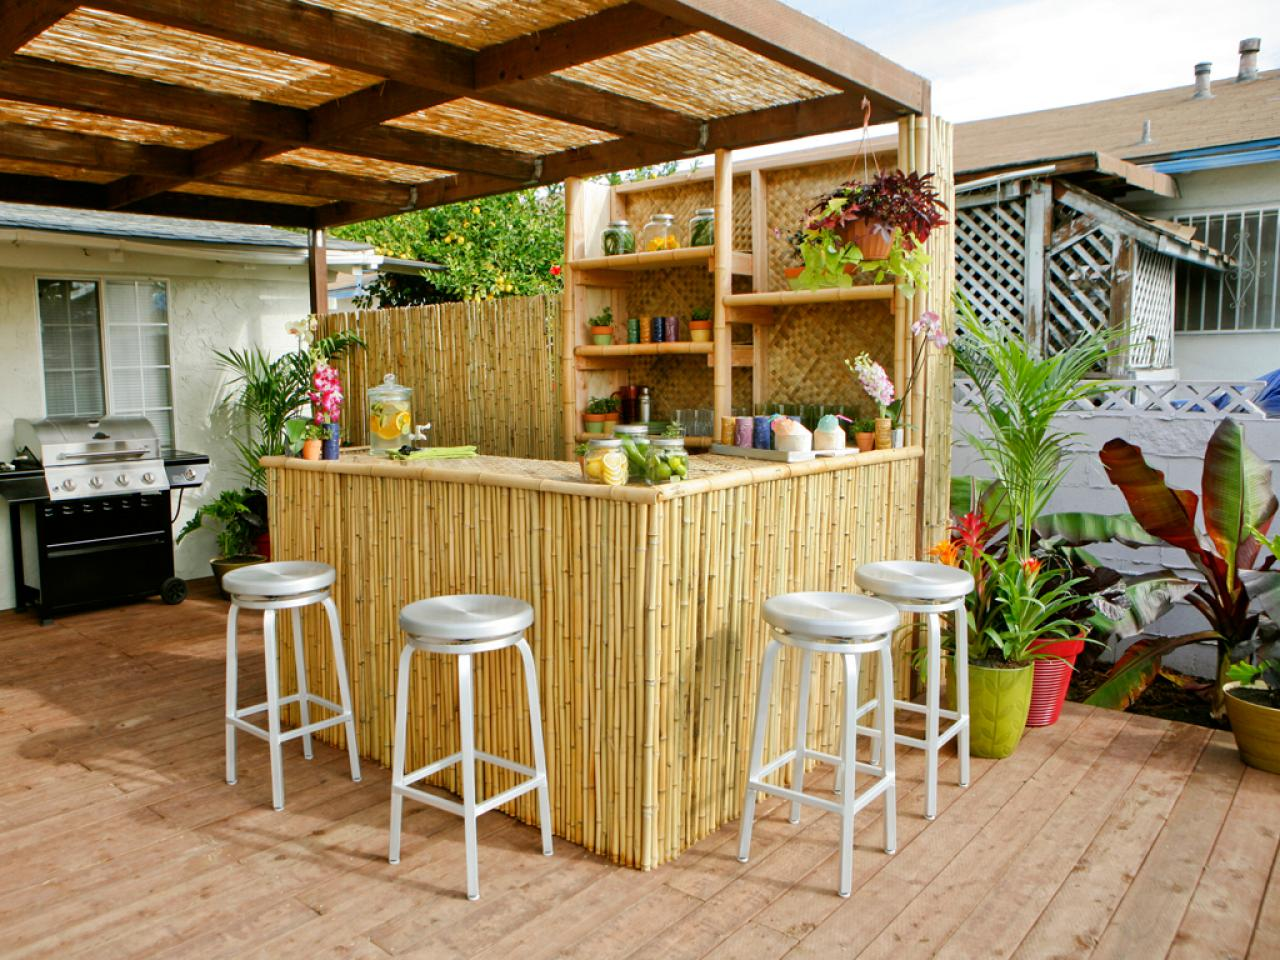 Marvelous Outdoor Kitchen Bar Ideas Images